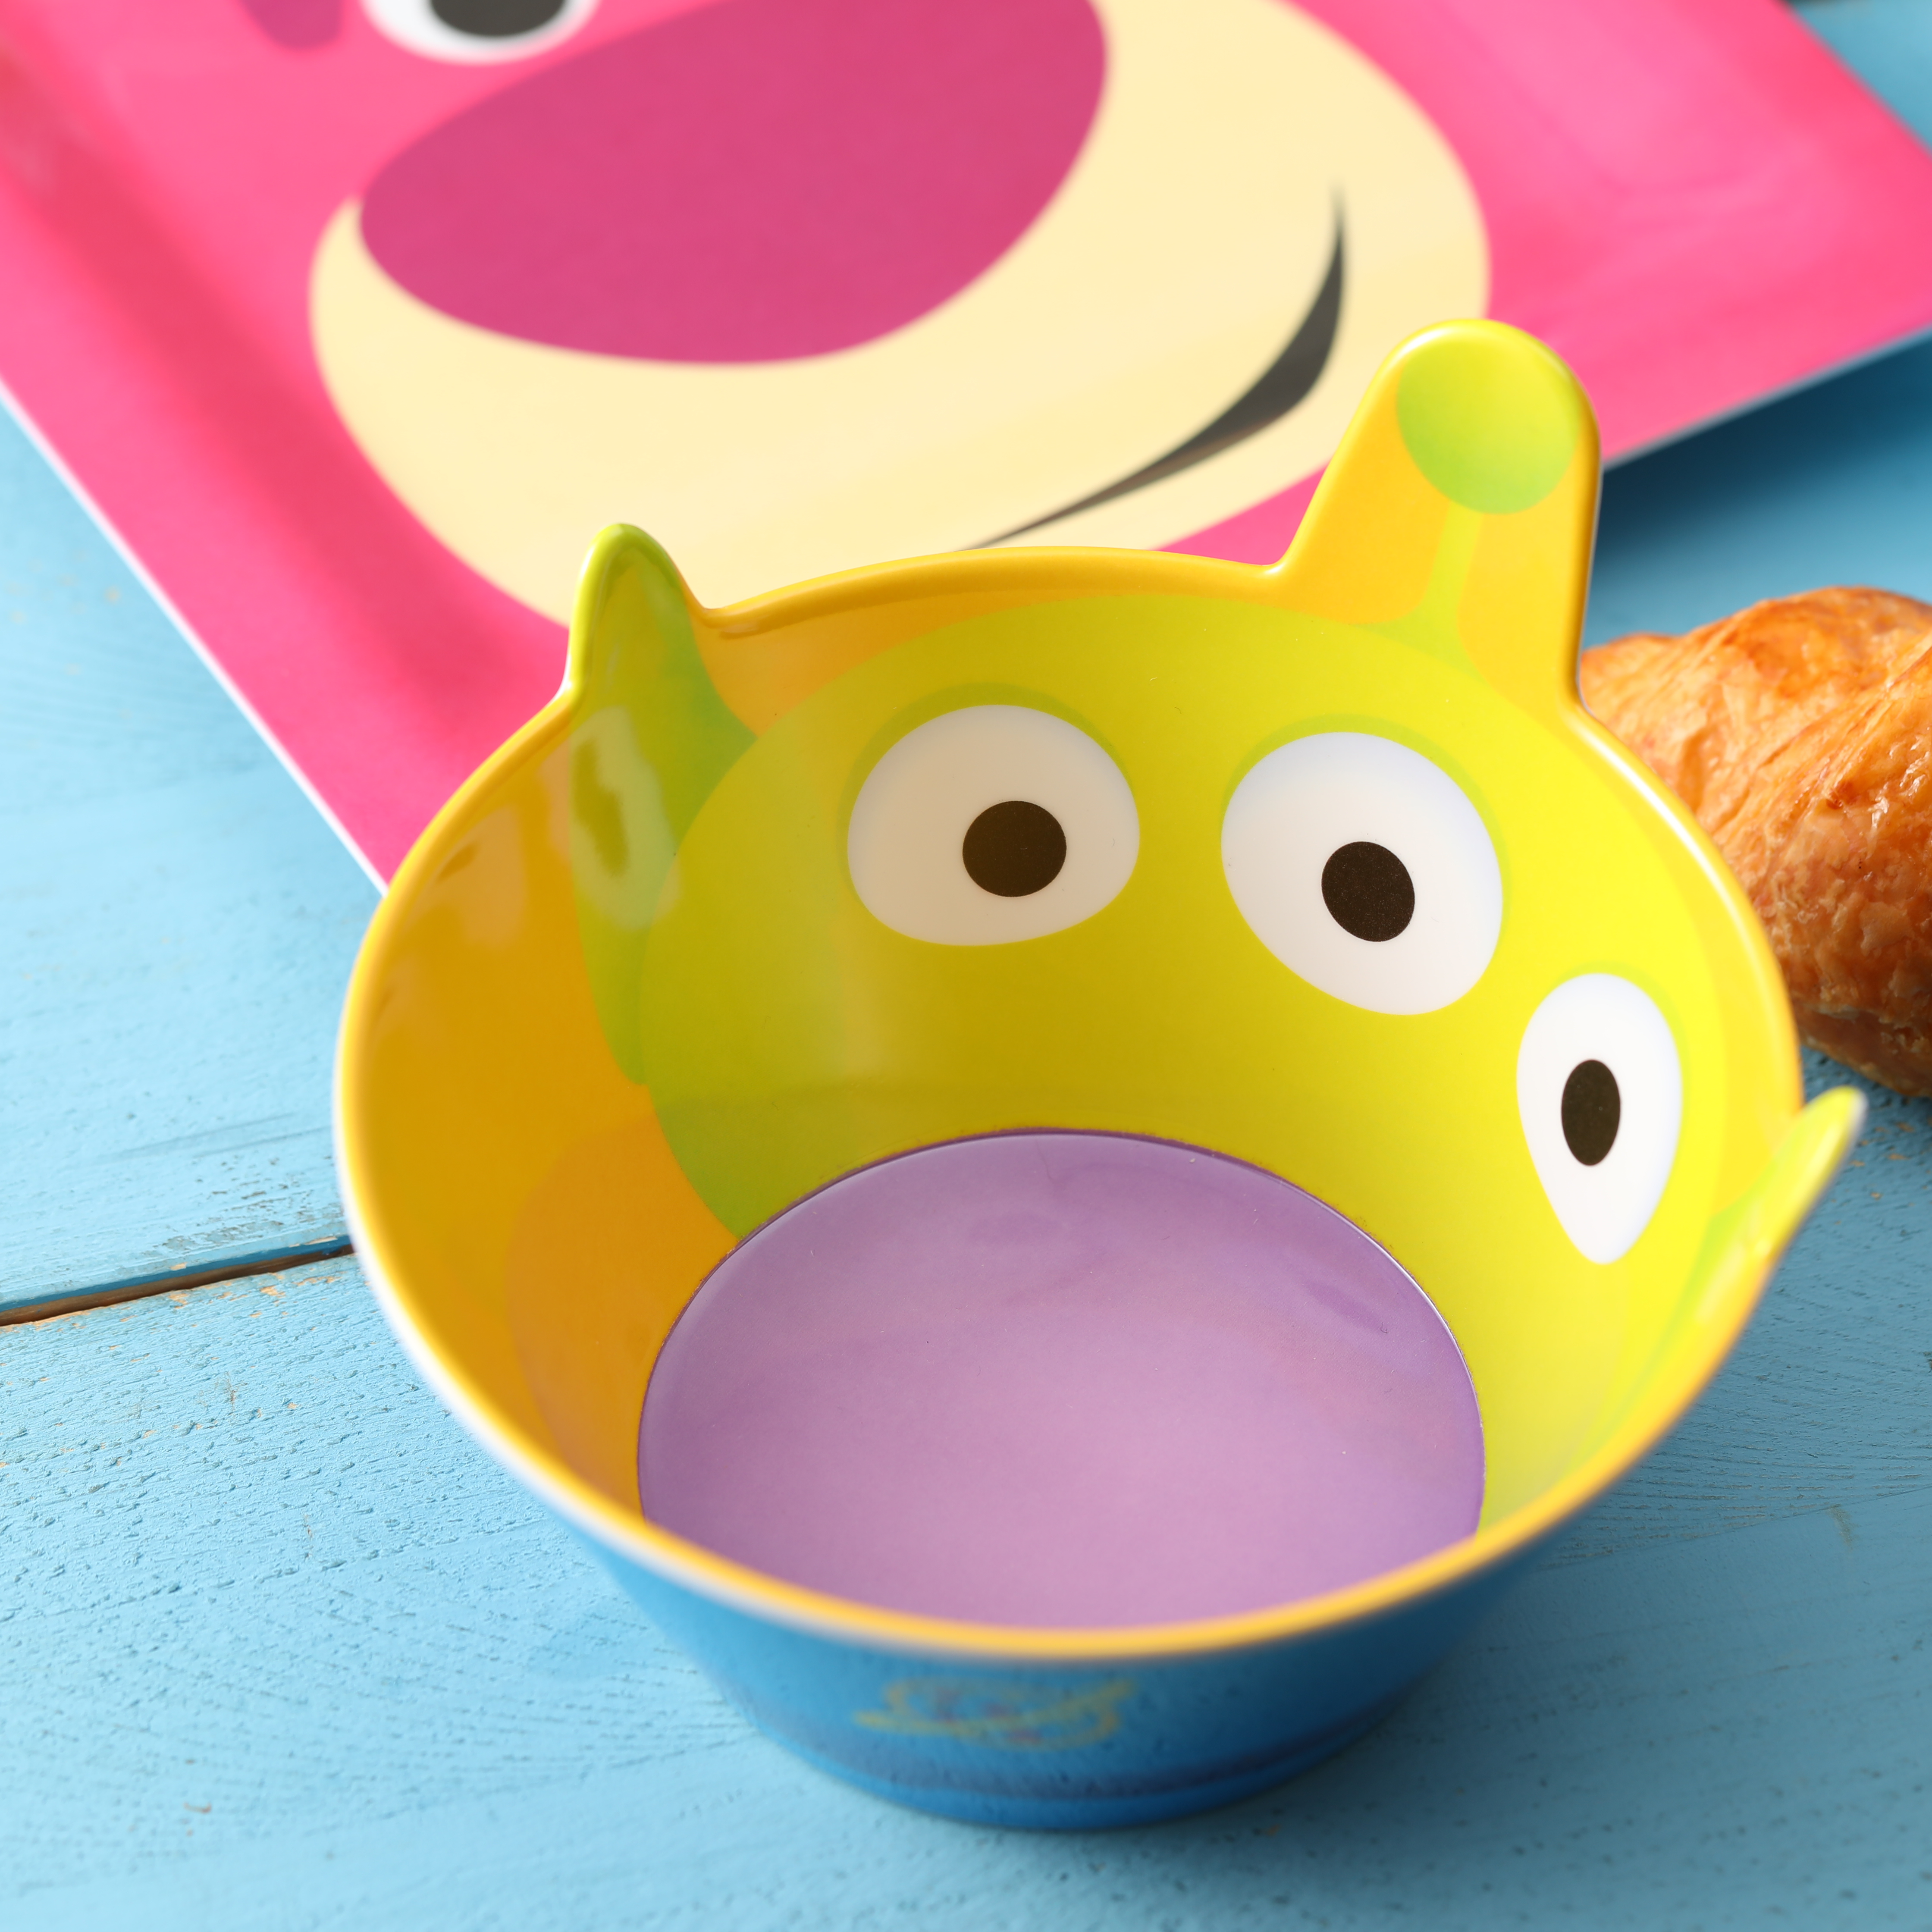 Disney and Pixar Plate and Bowl Set, Aliens, 2-piece set slideshow image 3